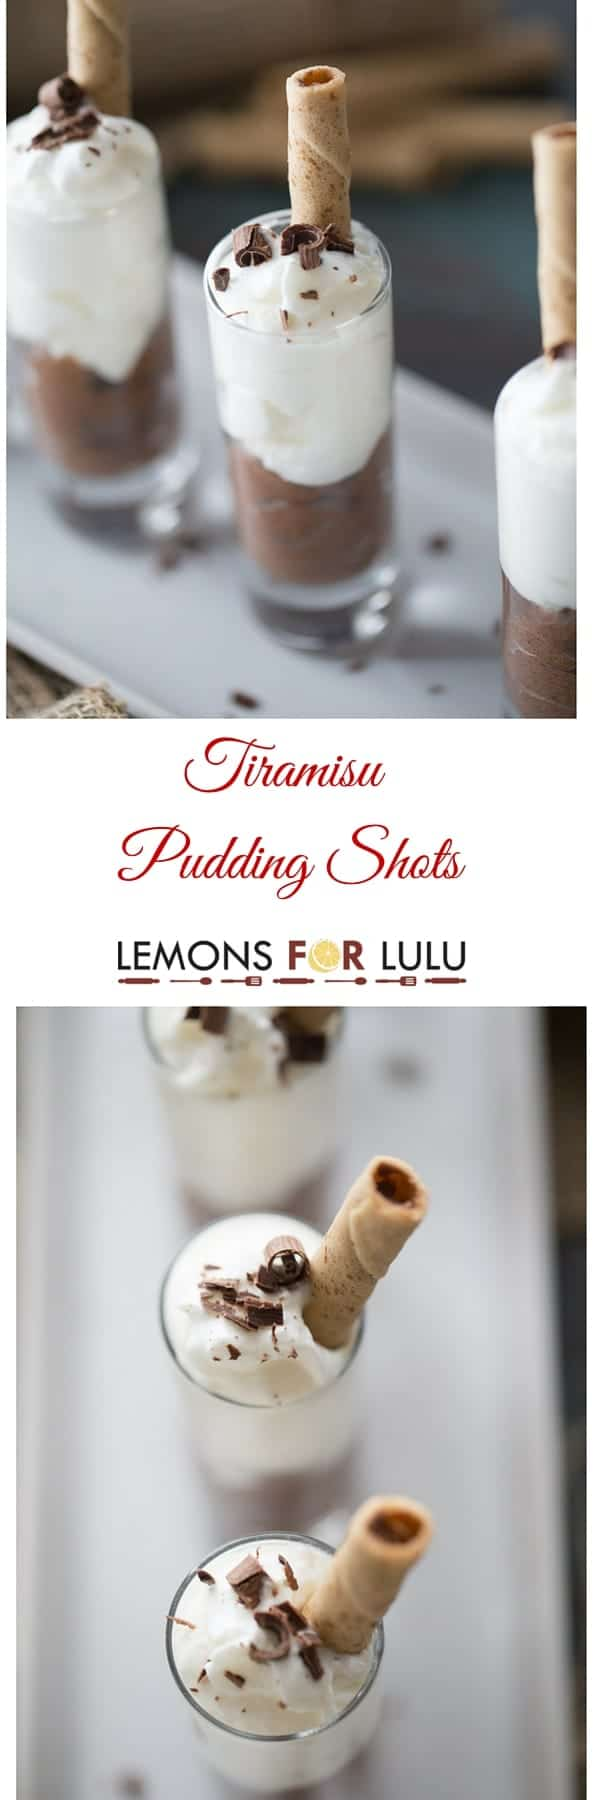 Is this Tiramisu pudding shots recipe dessert or just another boozy pudding shot? Each little cup is decadent, rich and irresistible! lemonsforlulu.com